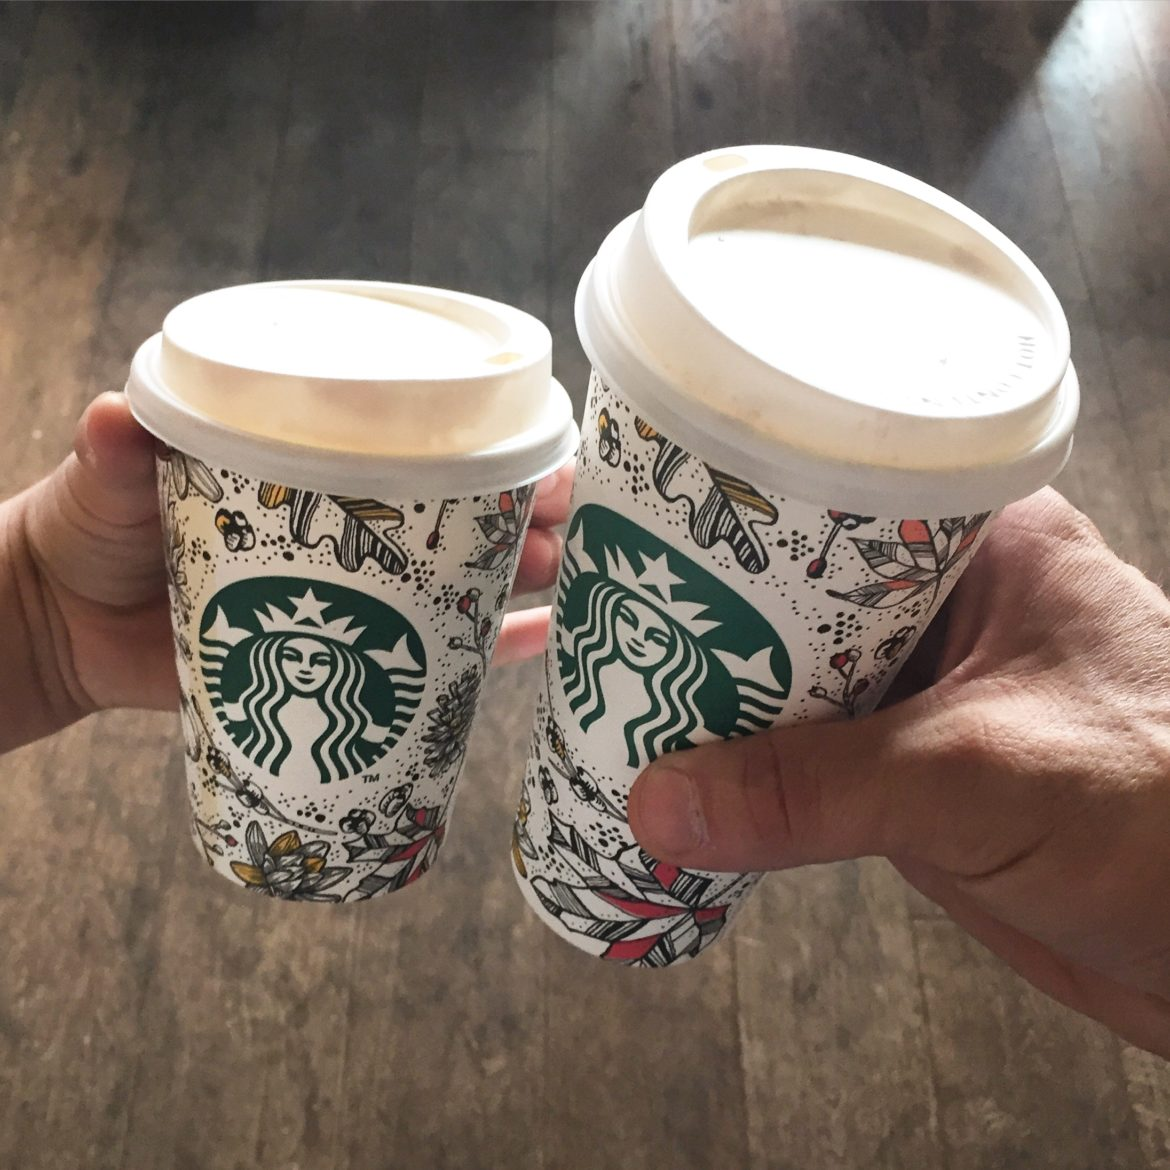 His and Her Pumpkin Spice Lattes: New Fall Cups